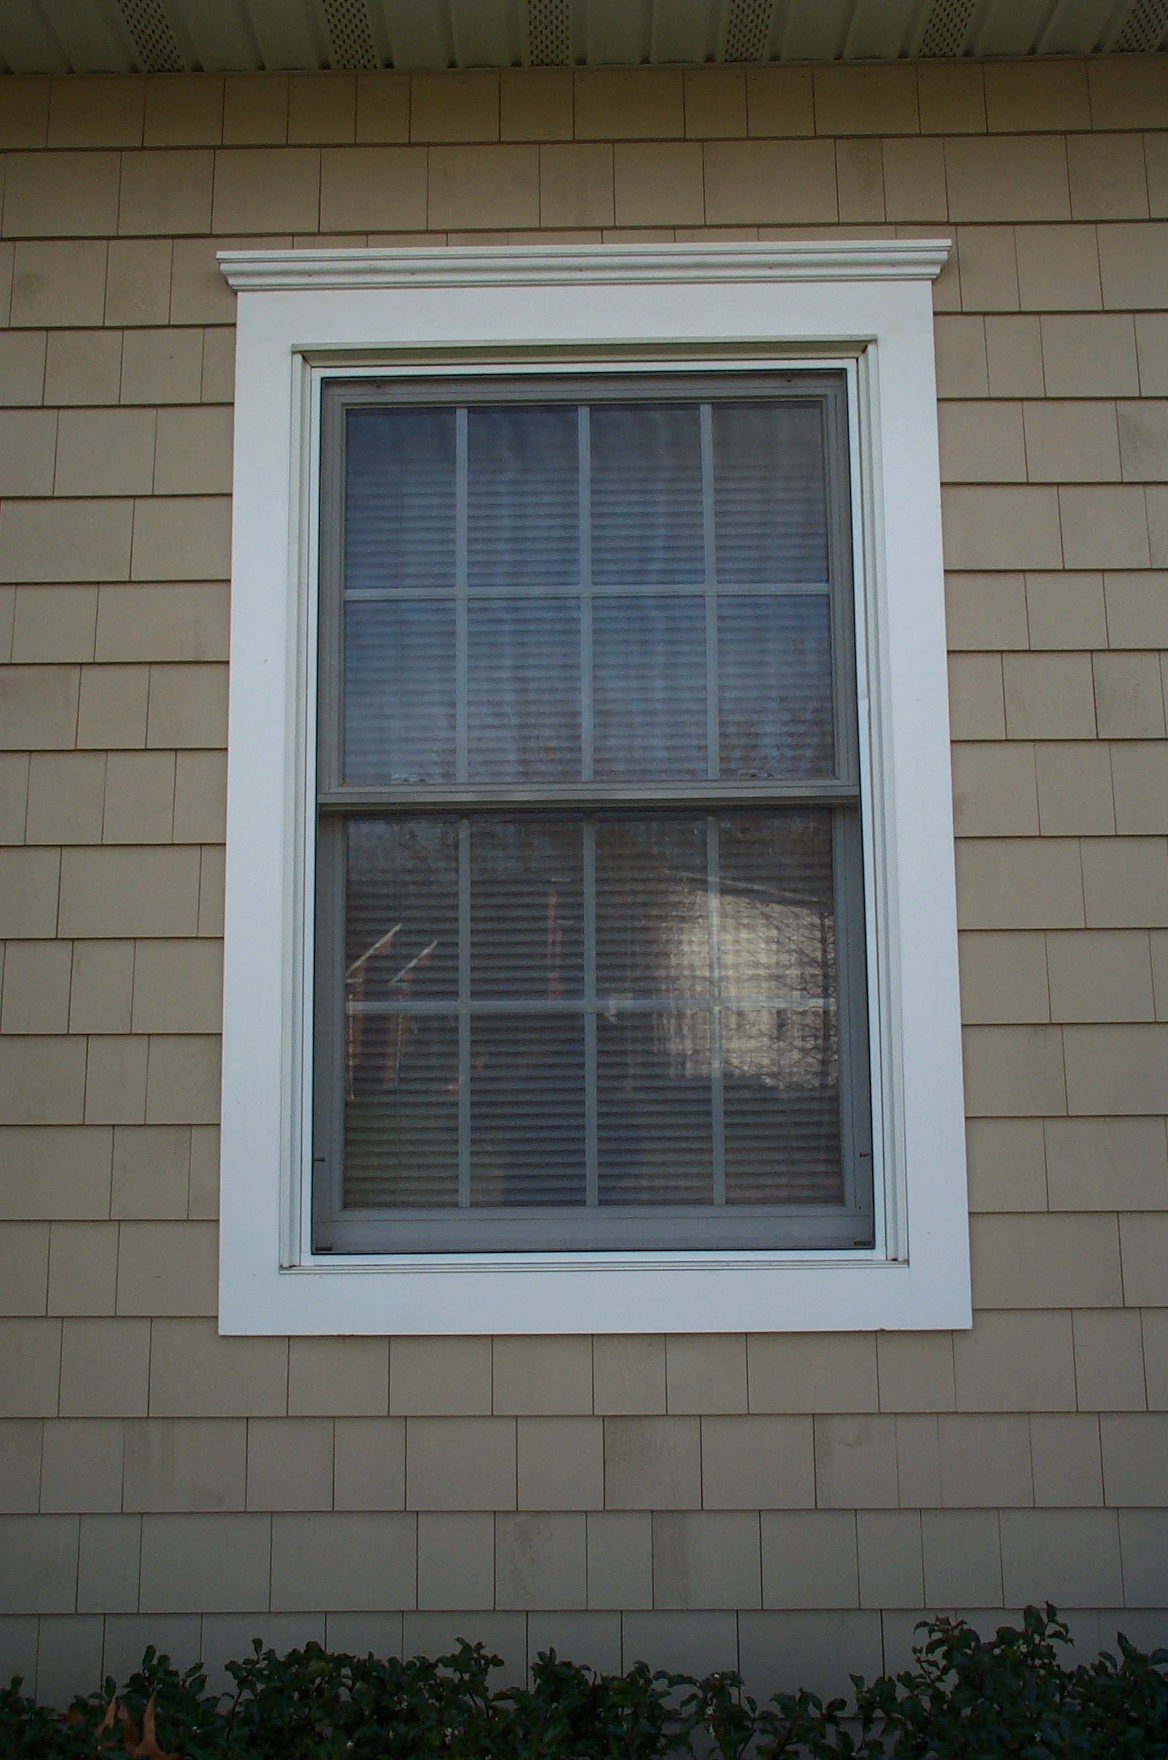 Window trim exterior vinyl - 3 1 4 Pvc Or Vinyl Or Brick Mould Windows Siding And